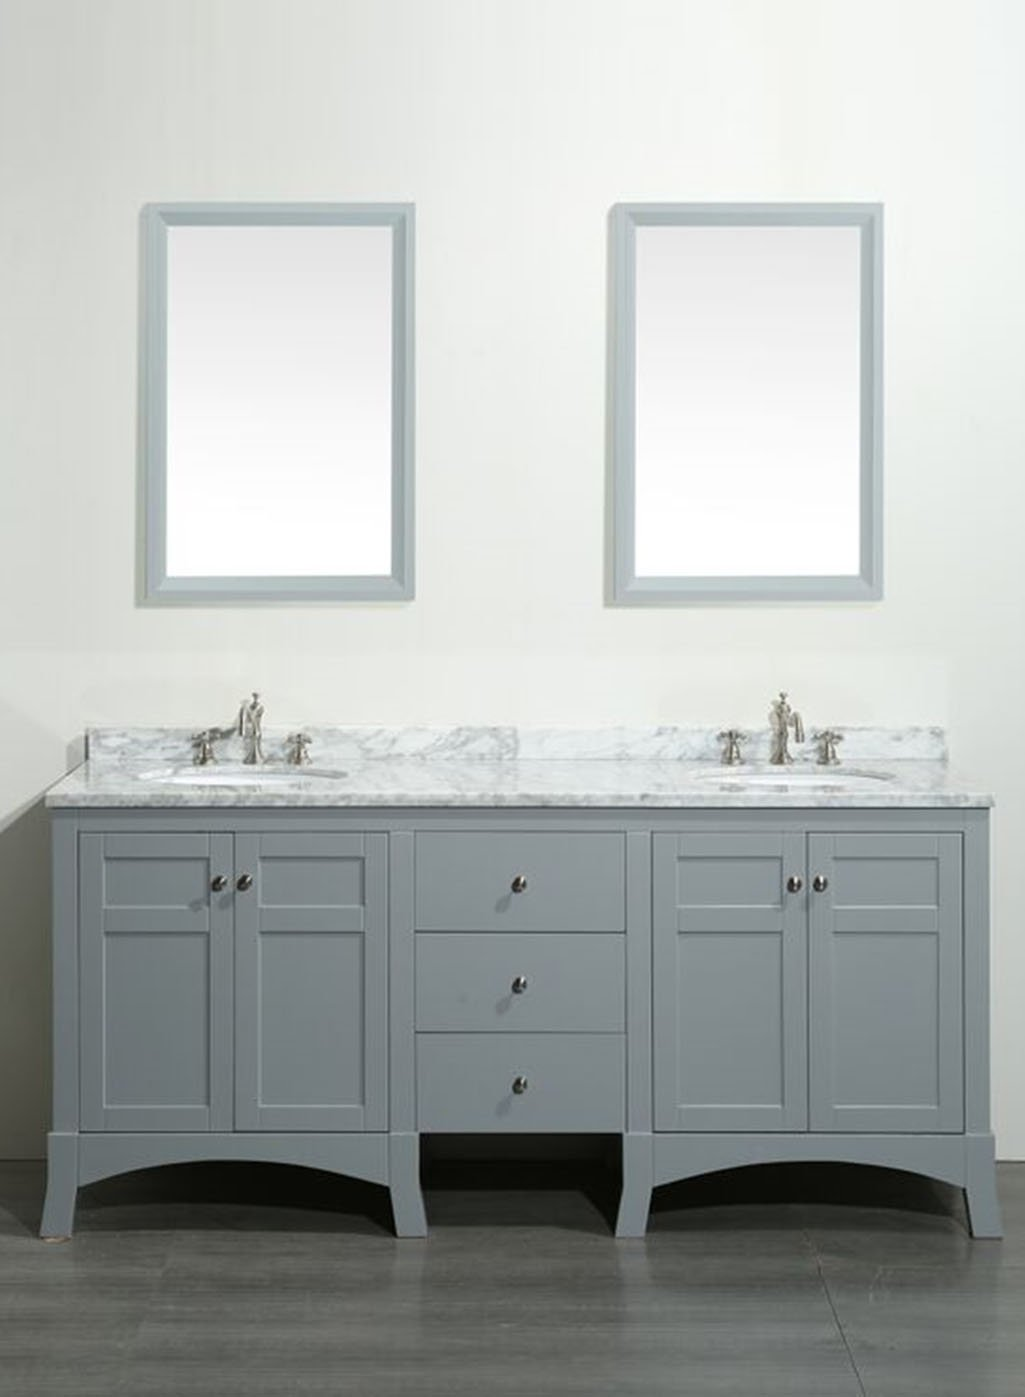 BUY ANTIQUE BATHROOM VANITIES | Decors US